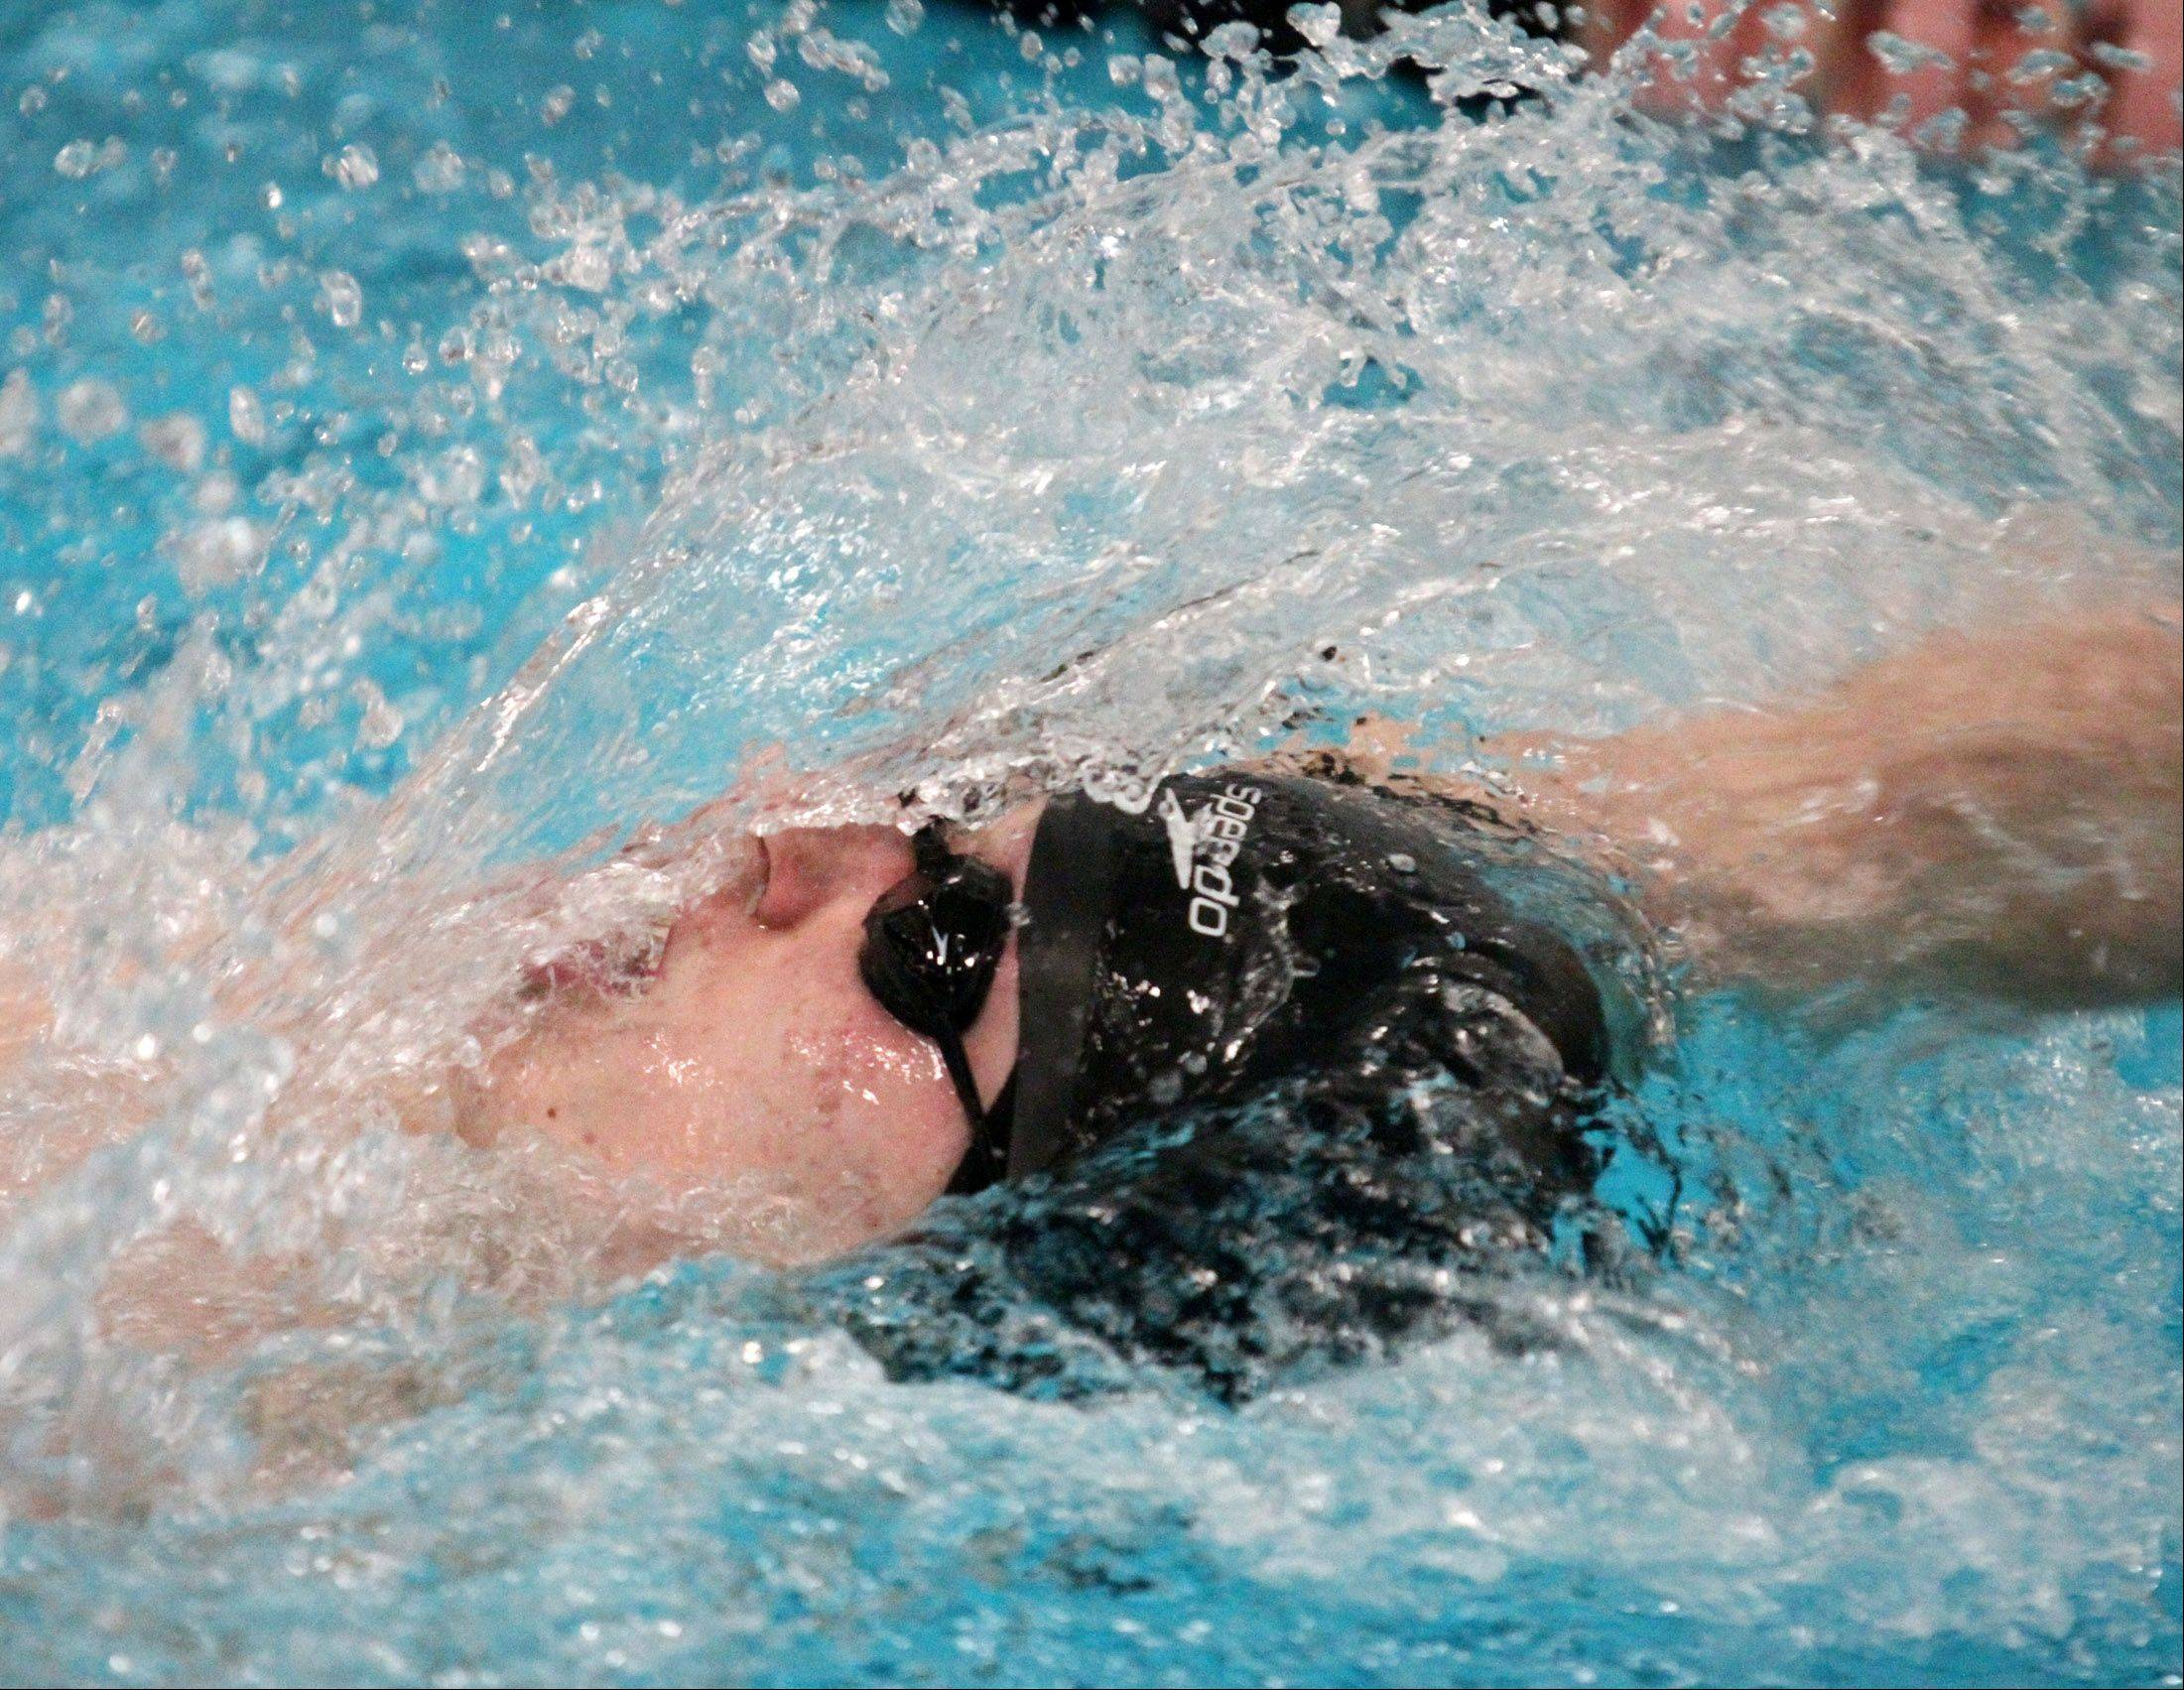 South Elgin's Alex Duffy placed 2nd in the 200-yard individual melody at the sectional swim meet at St. Charles East on Saturday.